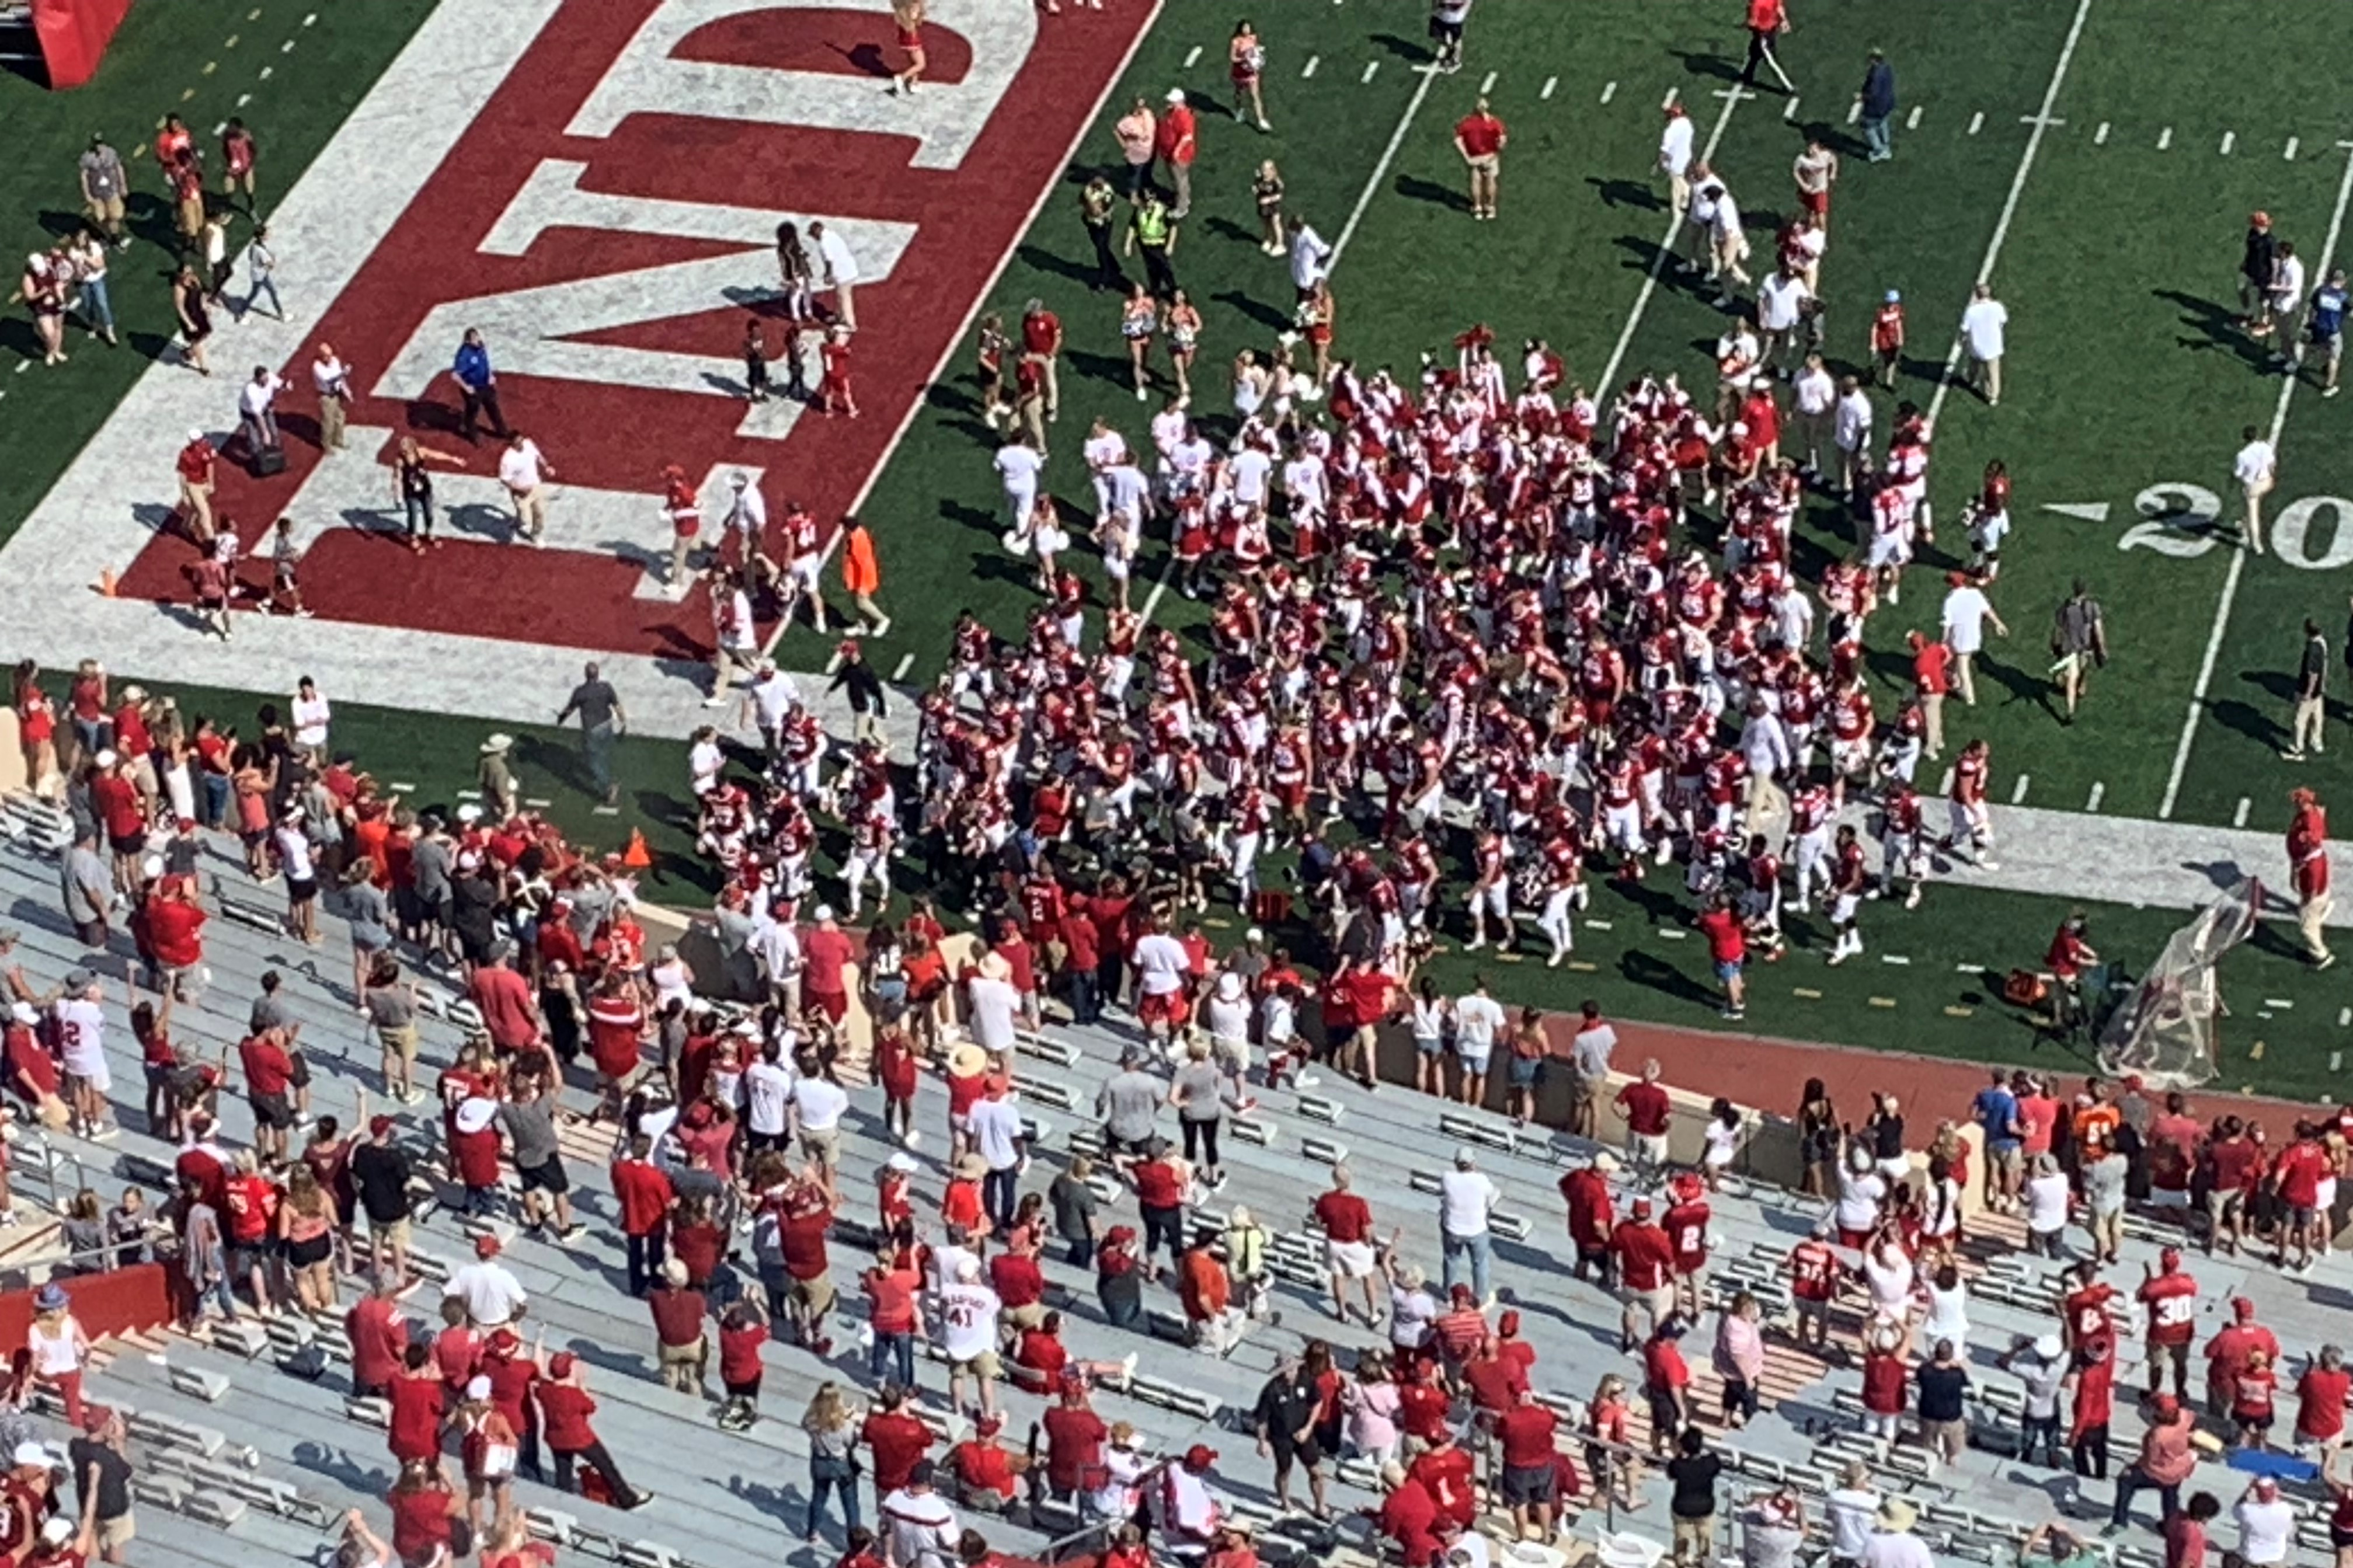 Iu football game